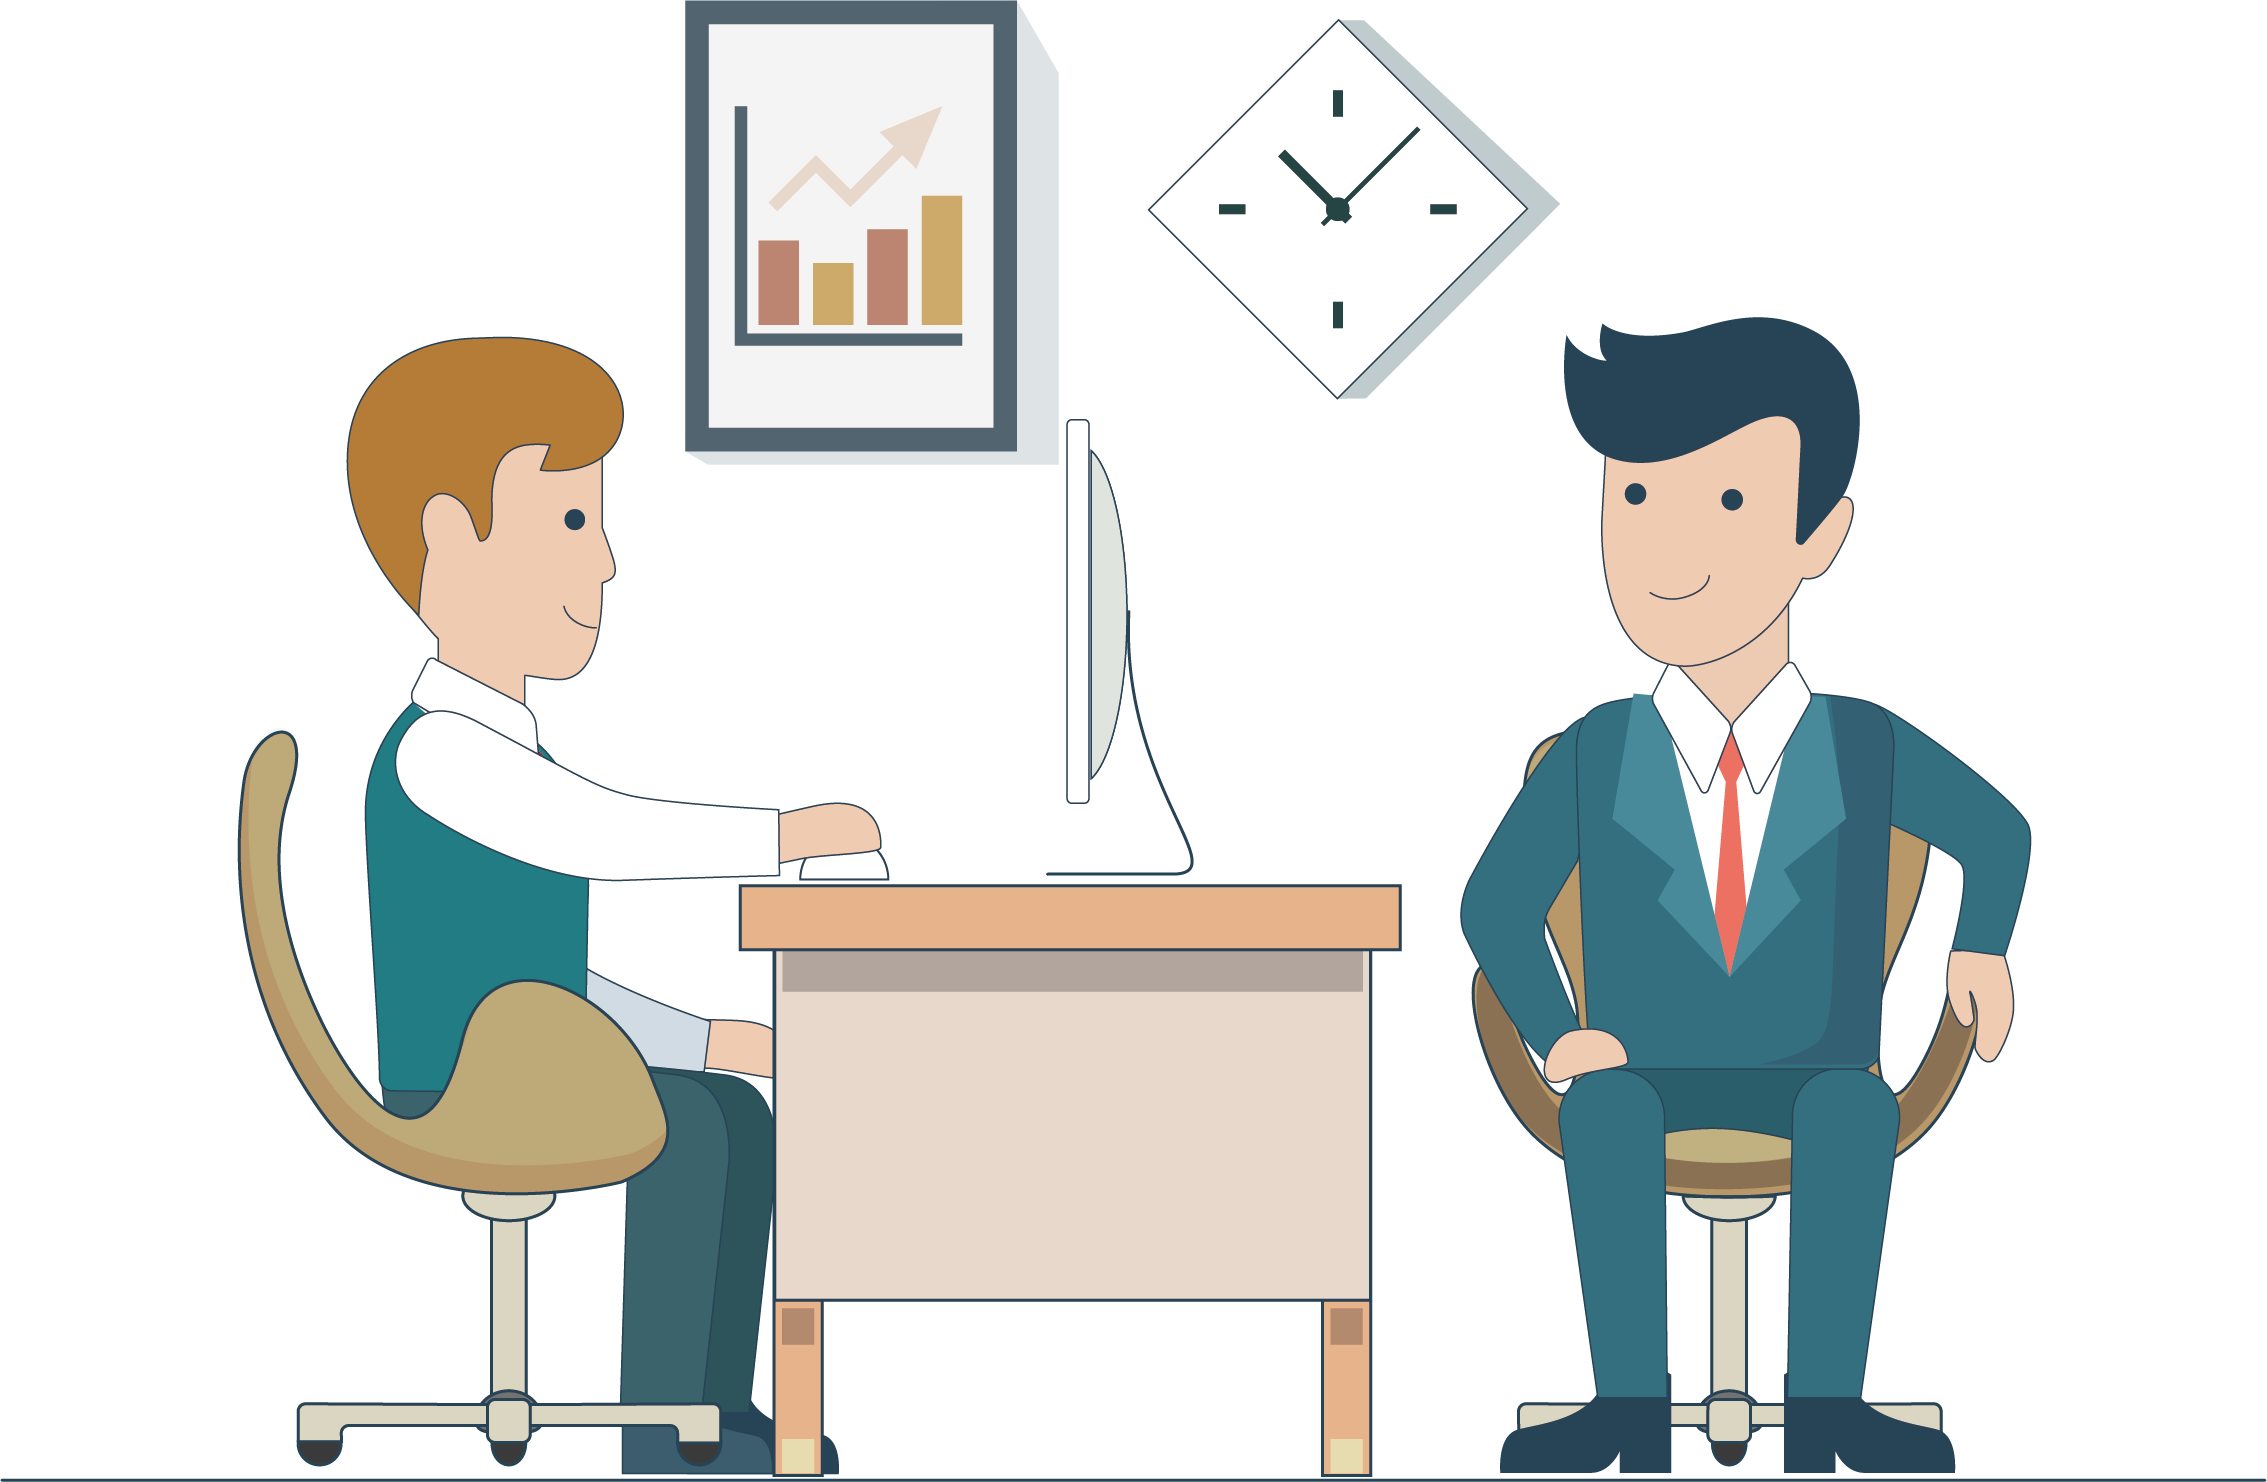 clipart black and white download Customer client clip art. Organization clipart.